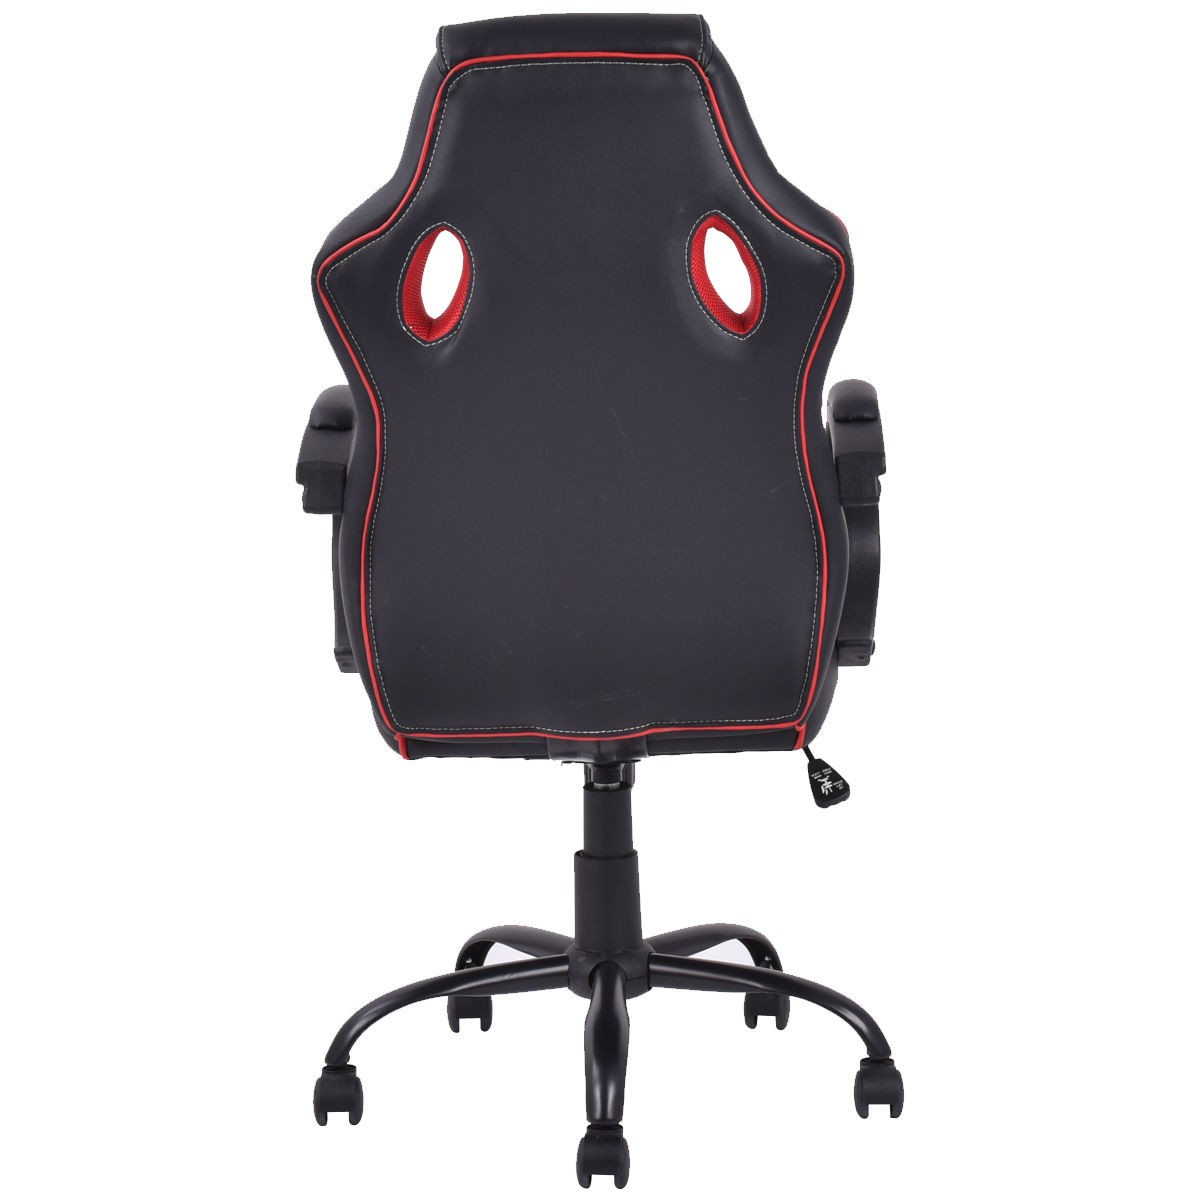 race car chair officeworks folding beach chairs racing style bucket seat office gaming desk